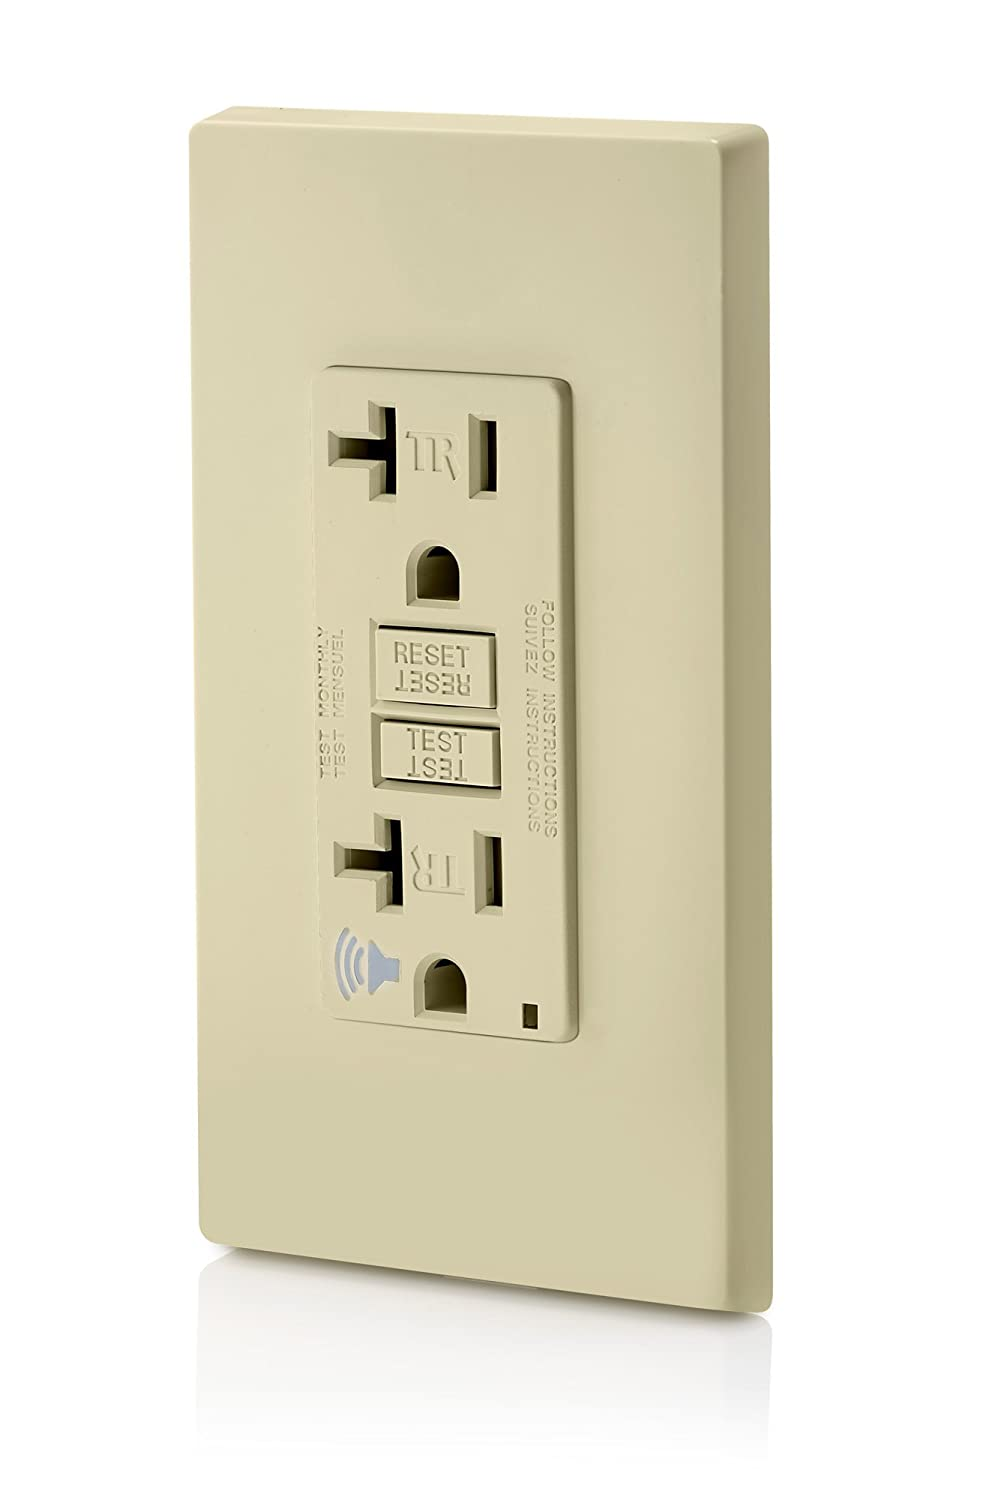 Leviton A7899 I Smartlockpro Slim Gfci With Audible Trip Alert 20 Circuit Breaker Keeps Immediately Tripping After Reset Electrical Amp 120 Volt Ivory